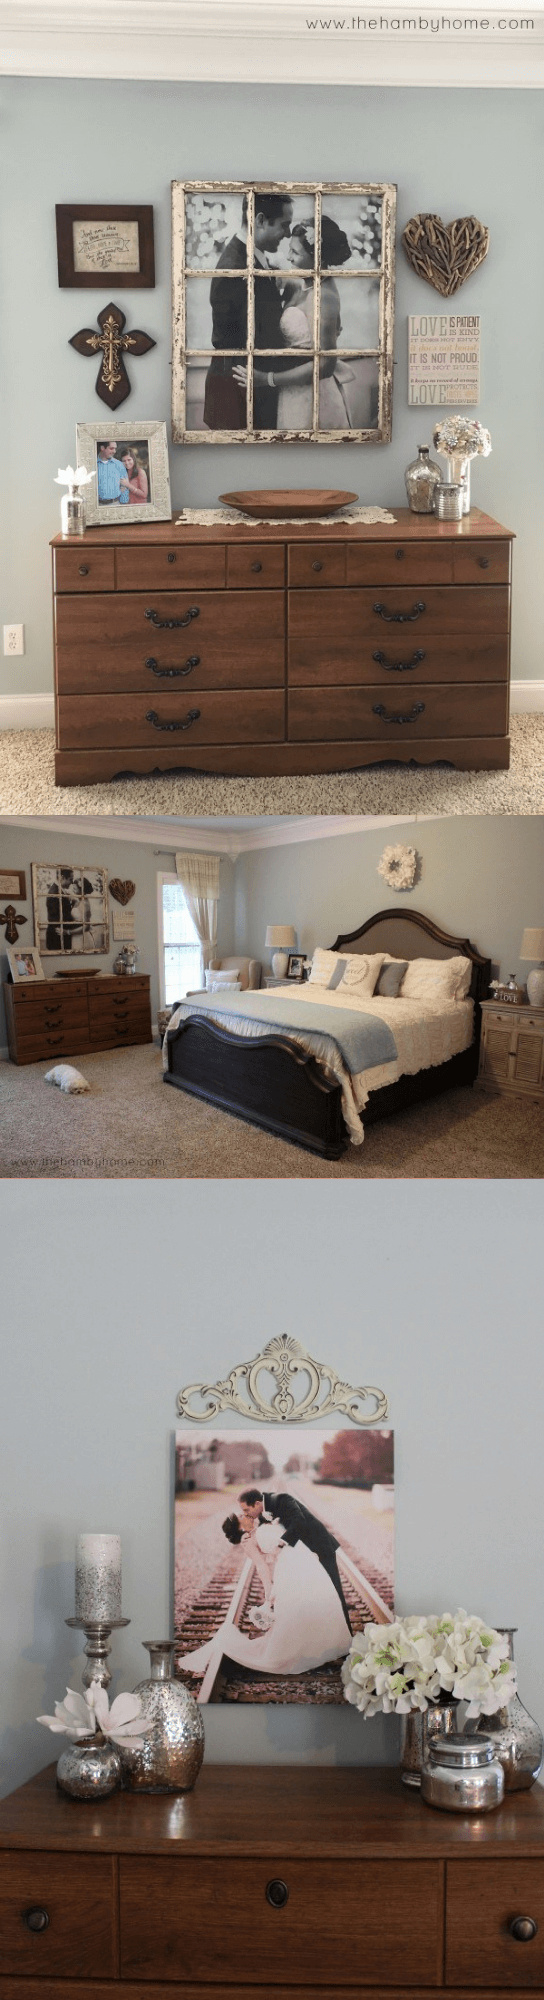 Master bedroom with picture frame